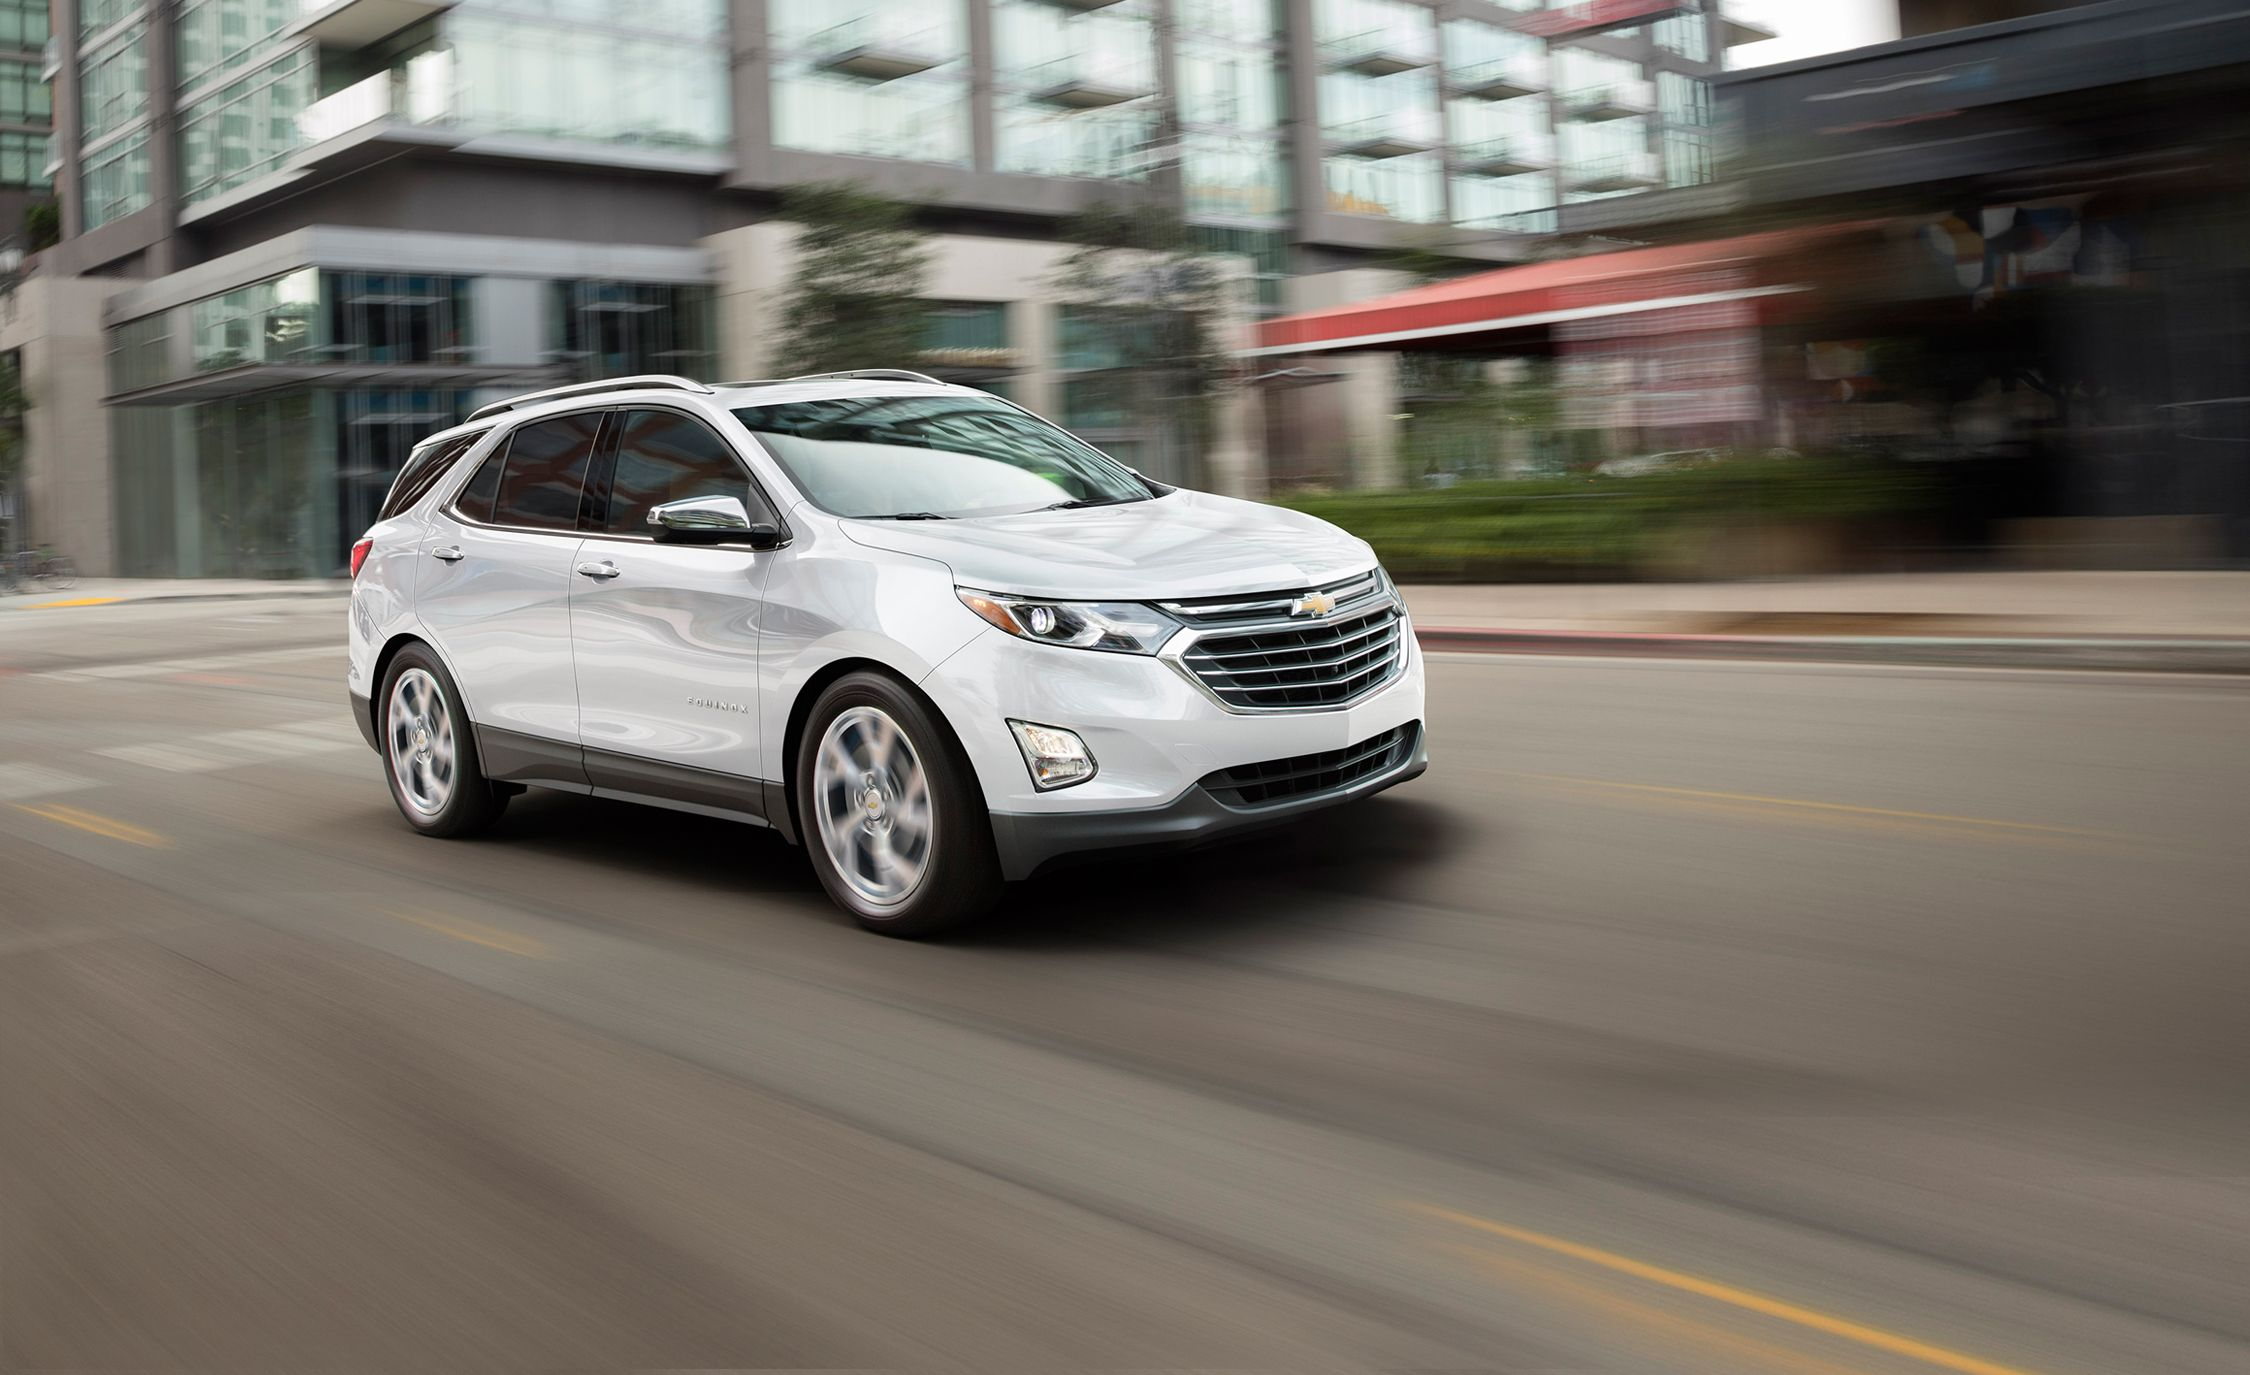 2018 Chevrolet Equinox Diesel First Drive | Review | Car and Driver